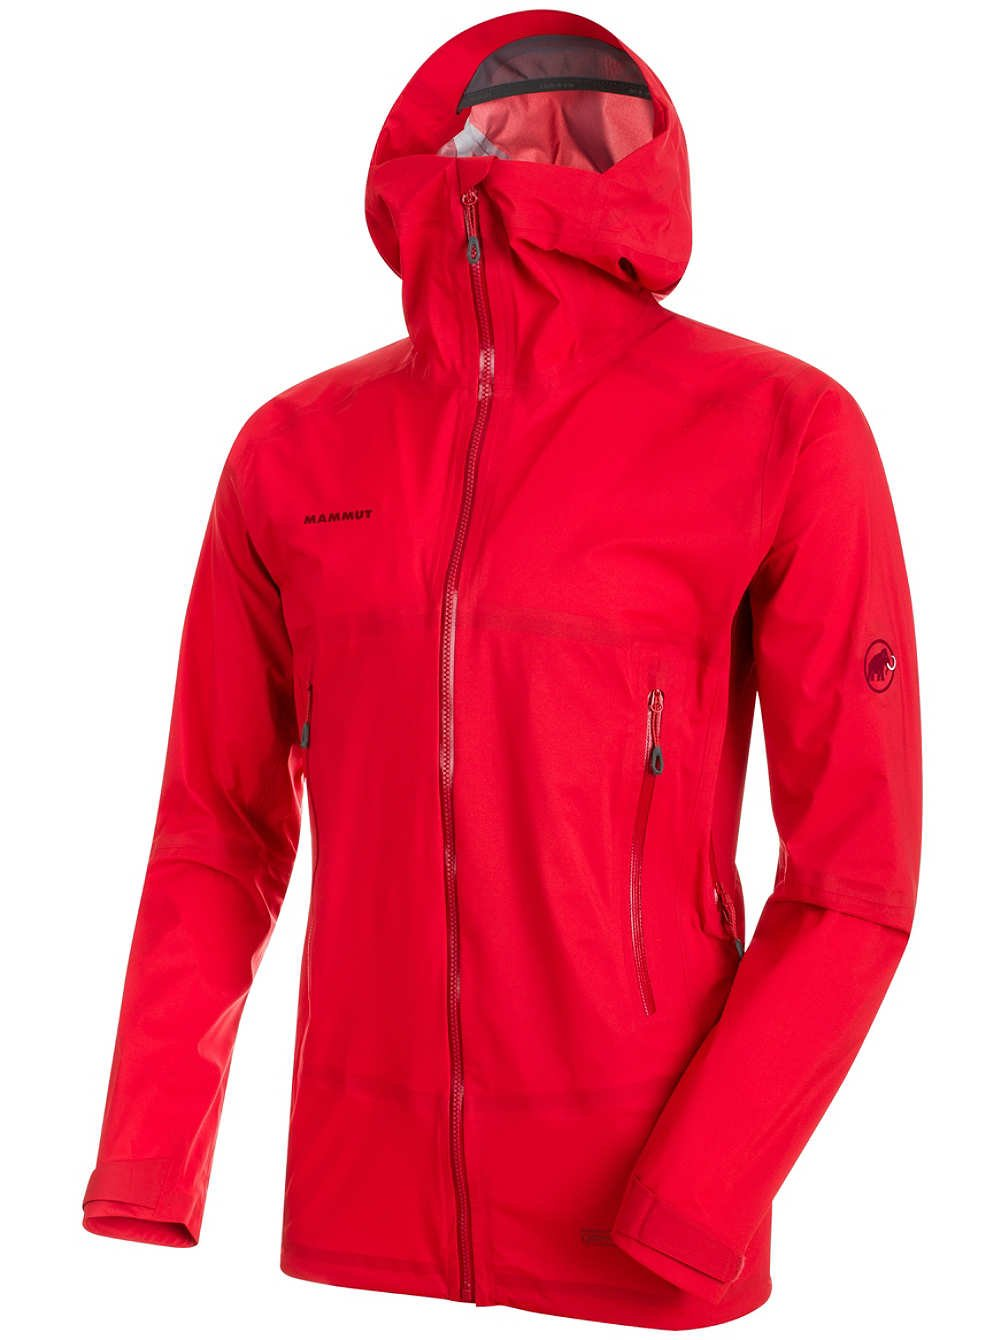 ◎マムート(MAMMUT) Masao Light HS Hooded Jacket メンズ 1010-25980-0121 ジャケット B078923DYY  magma Medium